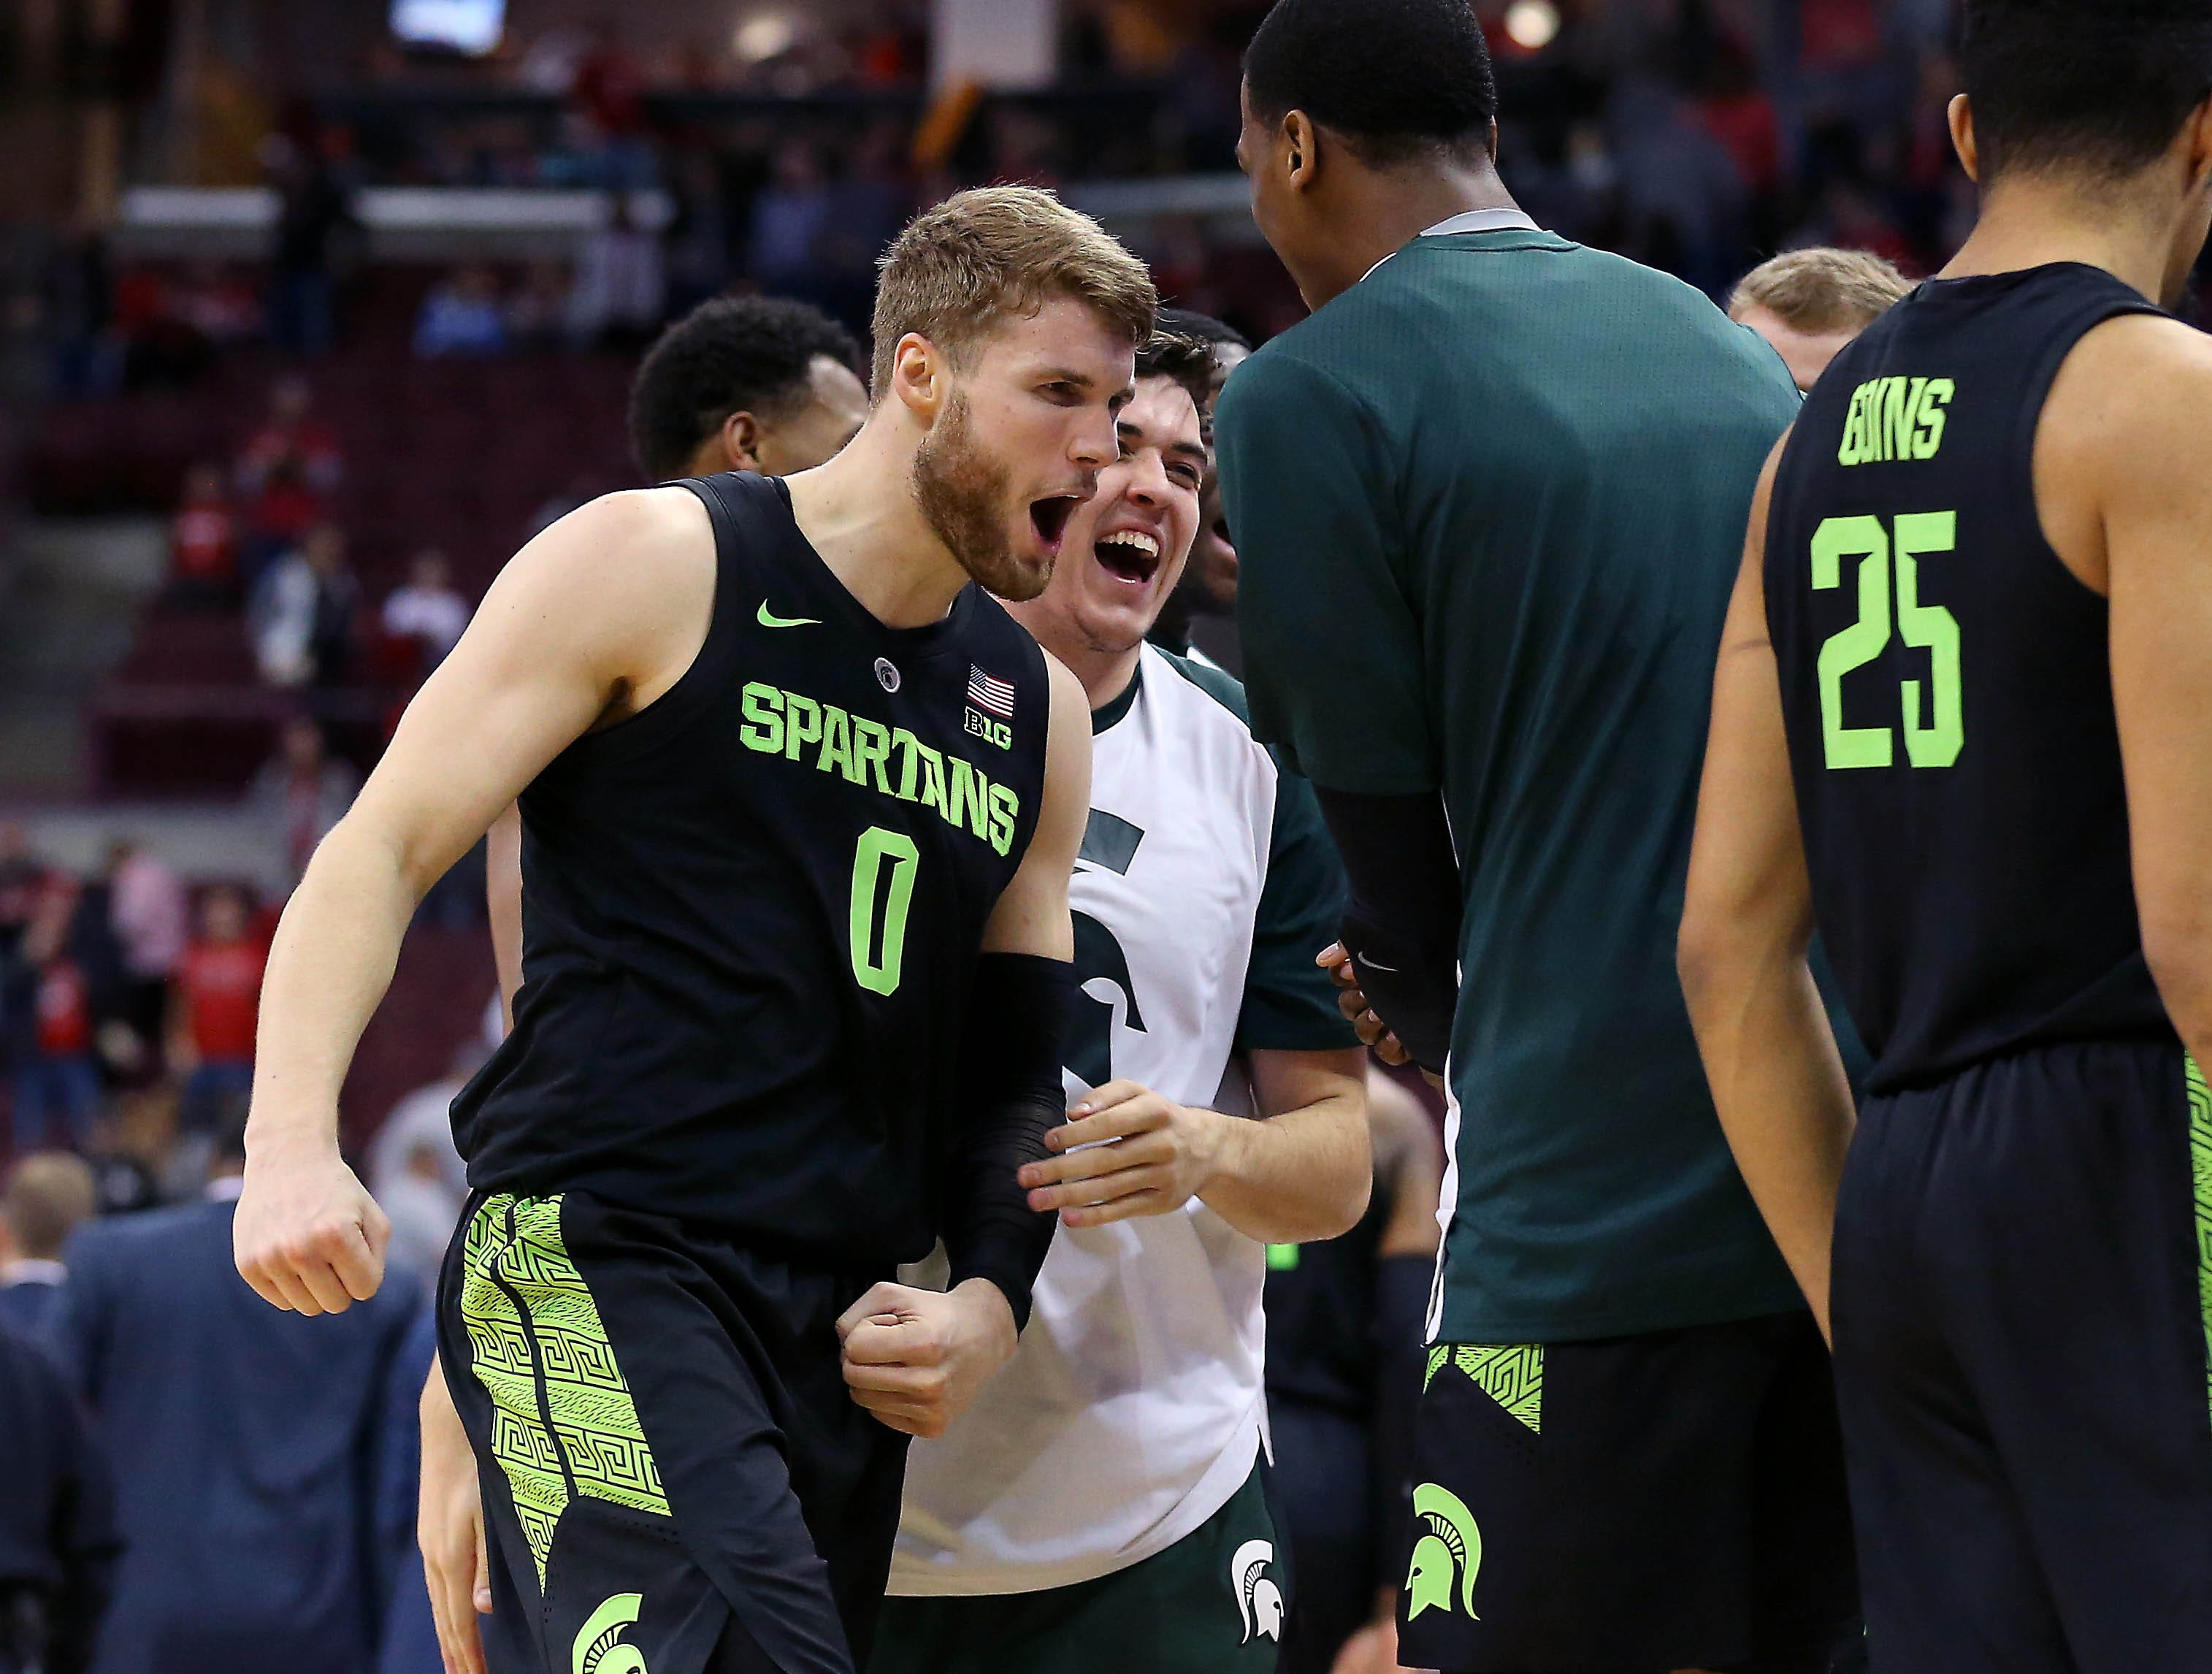 Jan 5, 2019; Columbus, OH, USA; Michigan State Spartans forward Kyle Ahrens (0) reacts during the second half against the Ohio State Buckeyes at Value City Arena. Mandatory Credit: Joe Maiorana-USA TODAY Sports